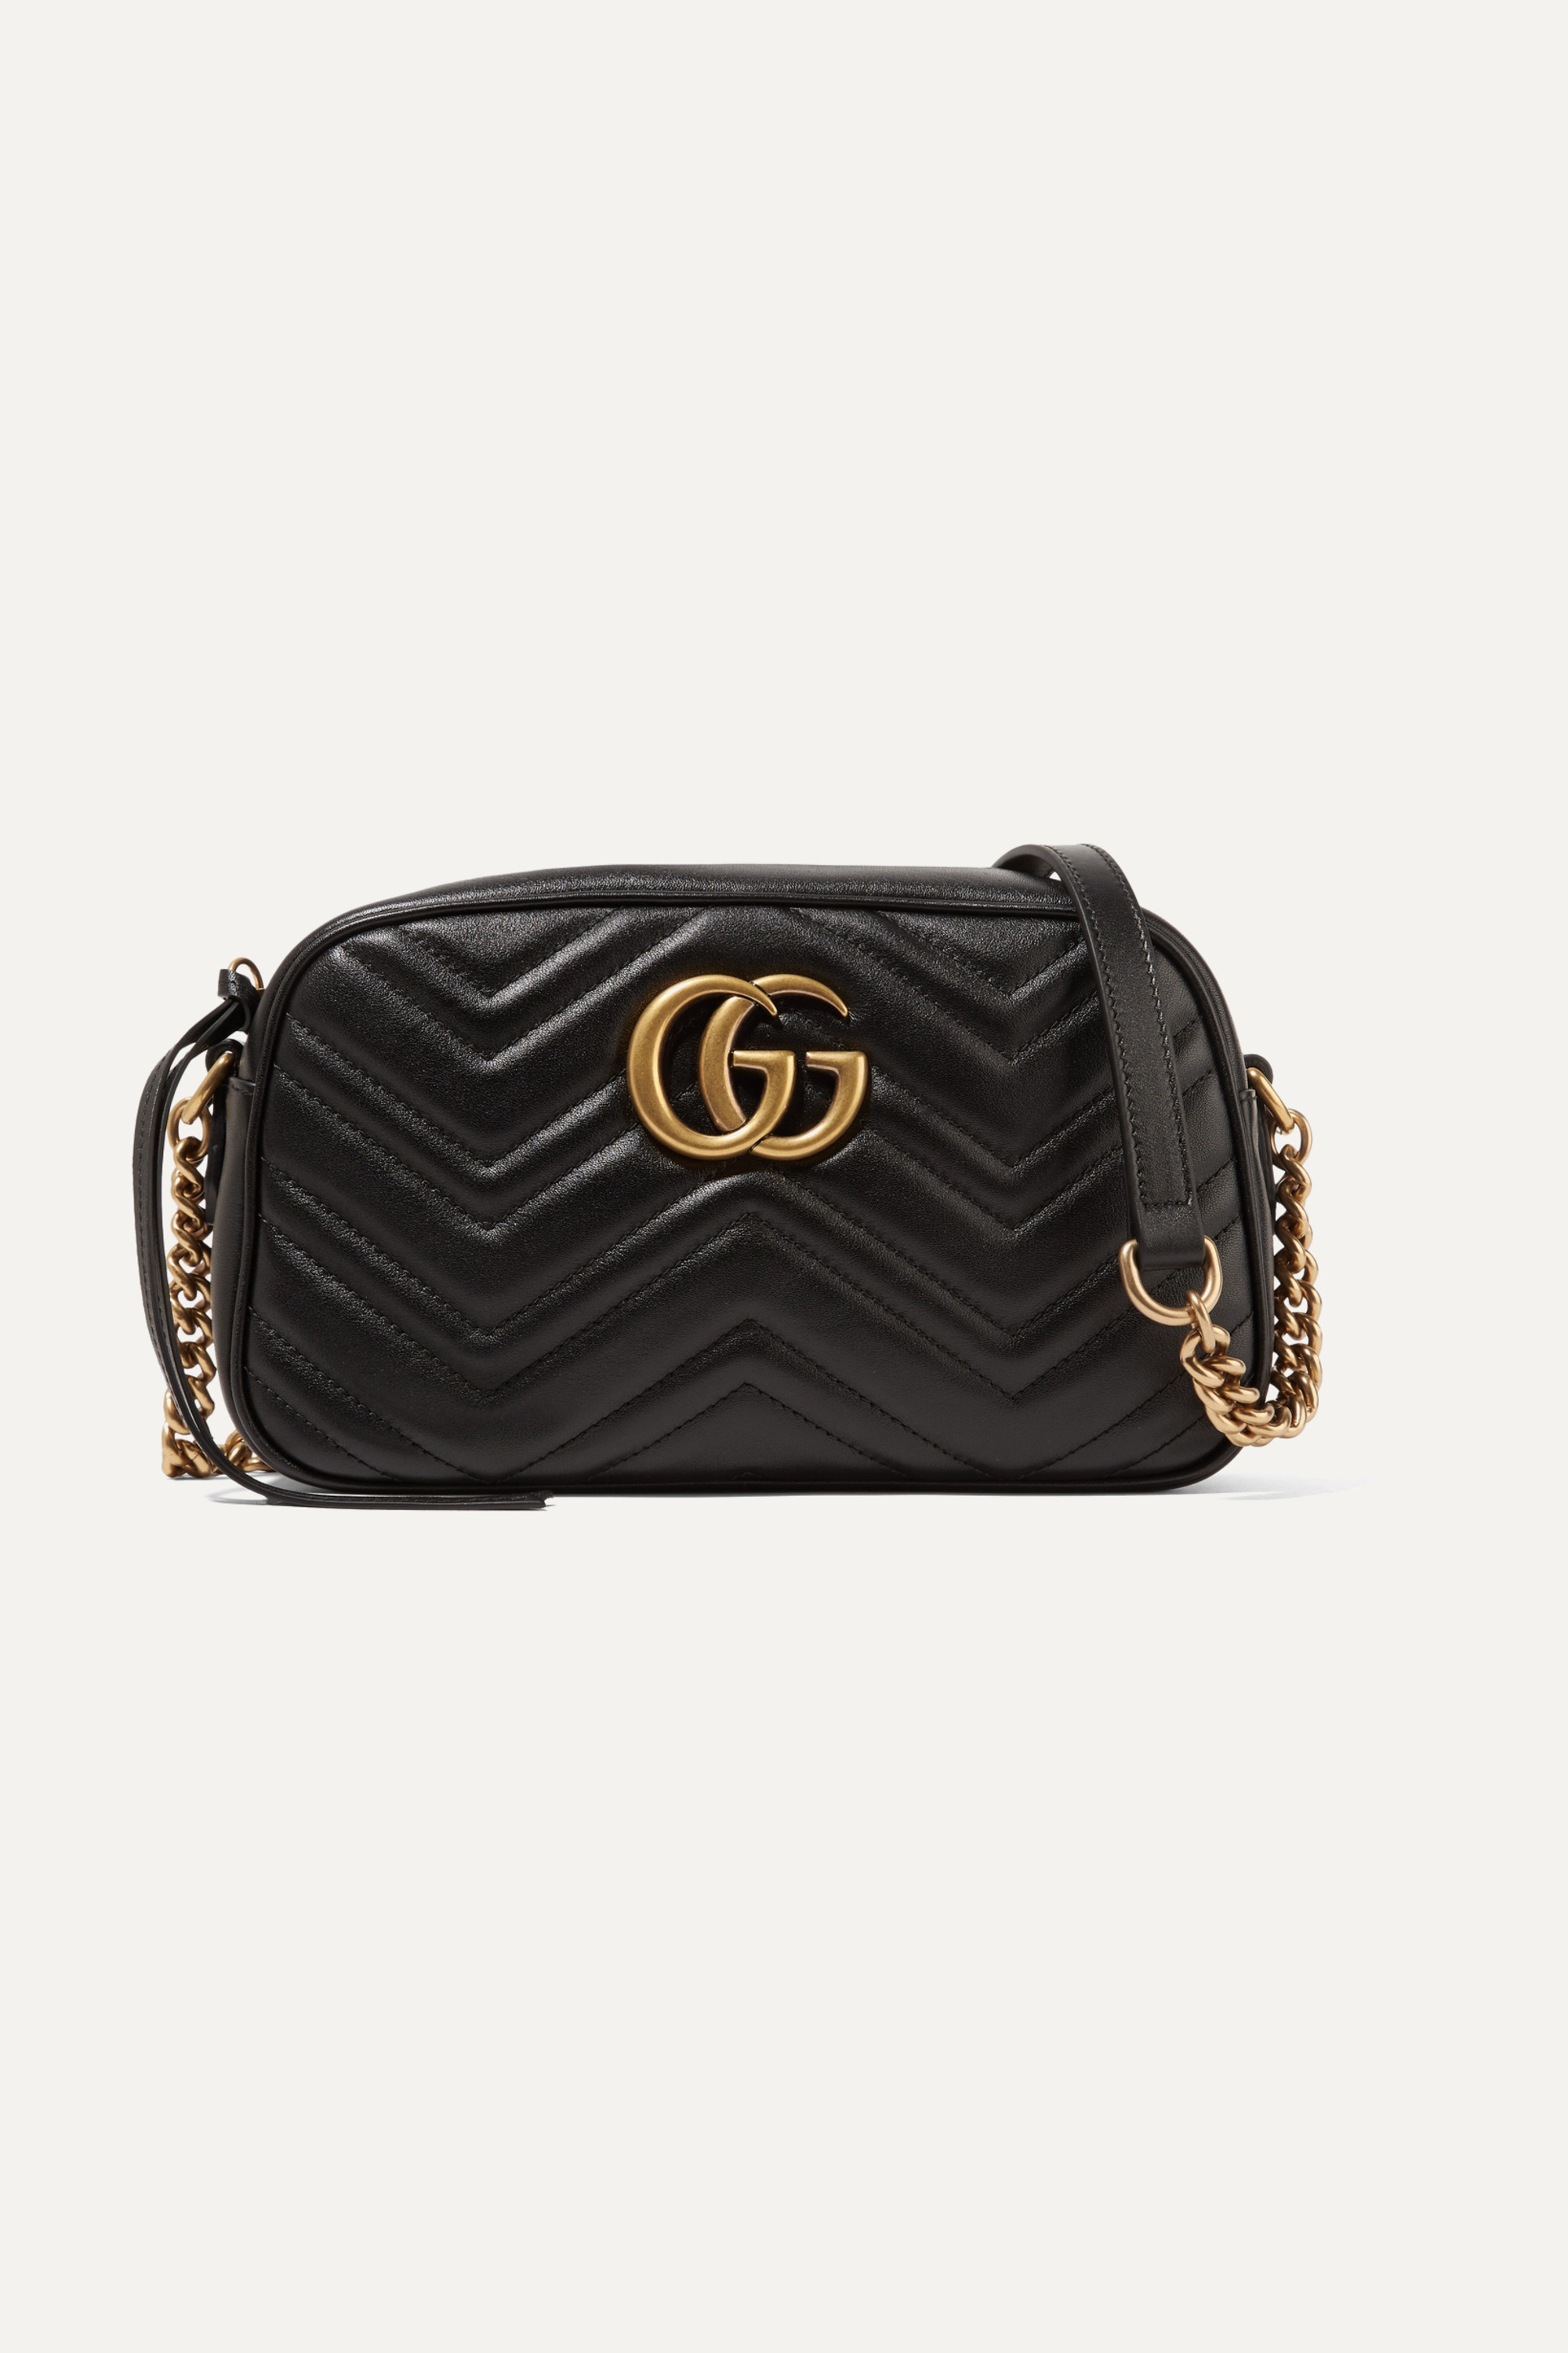 Black Gg Marmont Camera Small Quilted Leather Shoulder Bag Gucci Net A Porter